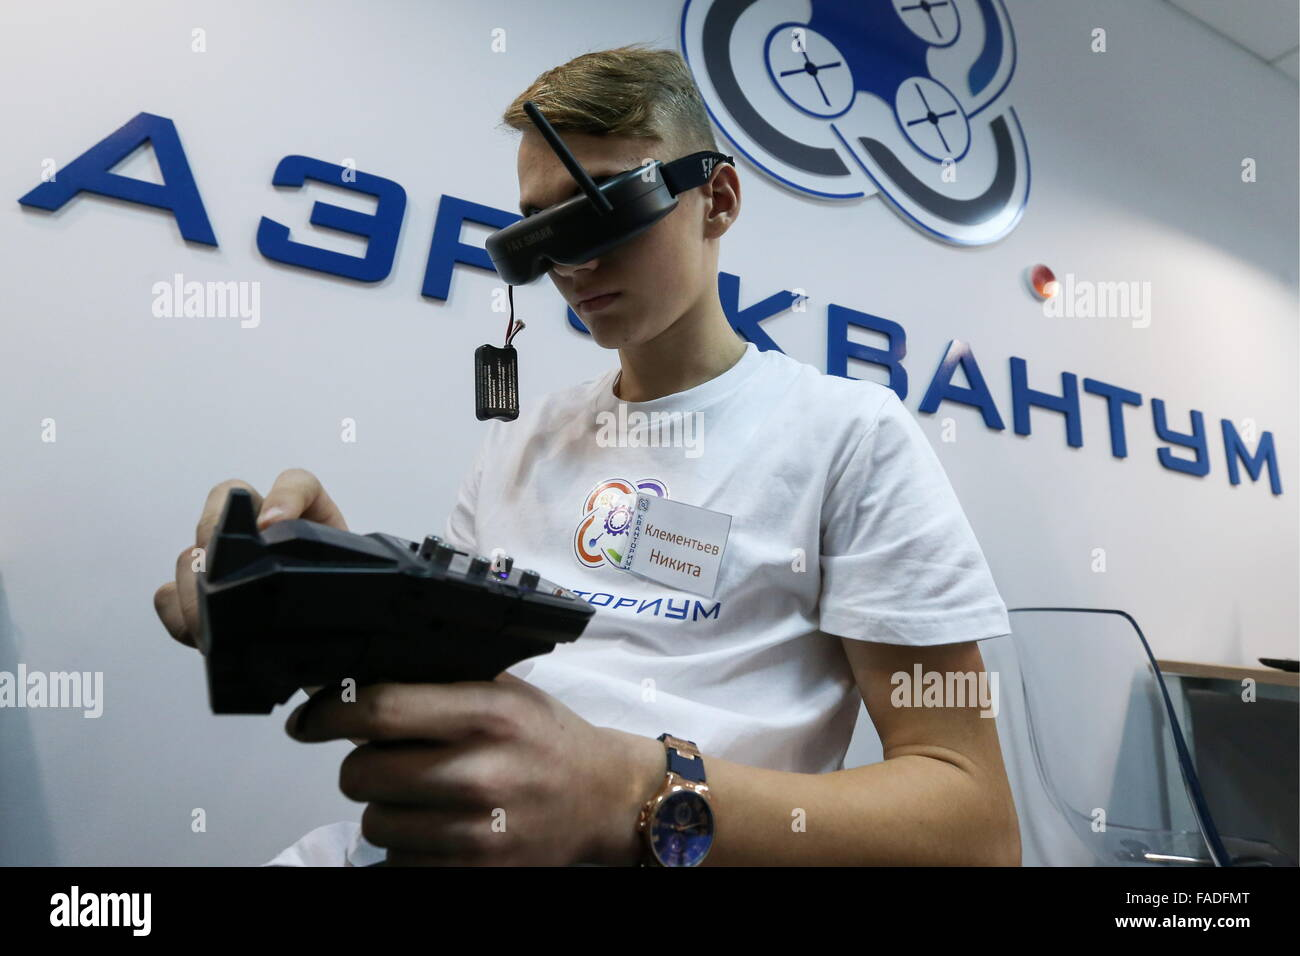 Naberezhnye Chelny, Russia. 27th Dec, 2015. A teenager uses a Fat Shark FPV (first person view) headset to radio - Stock Image